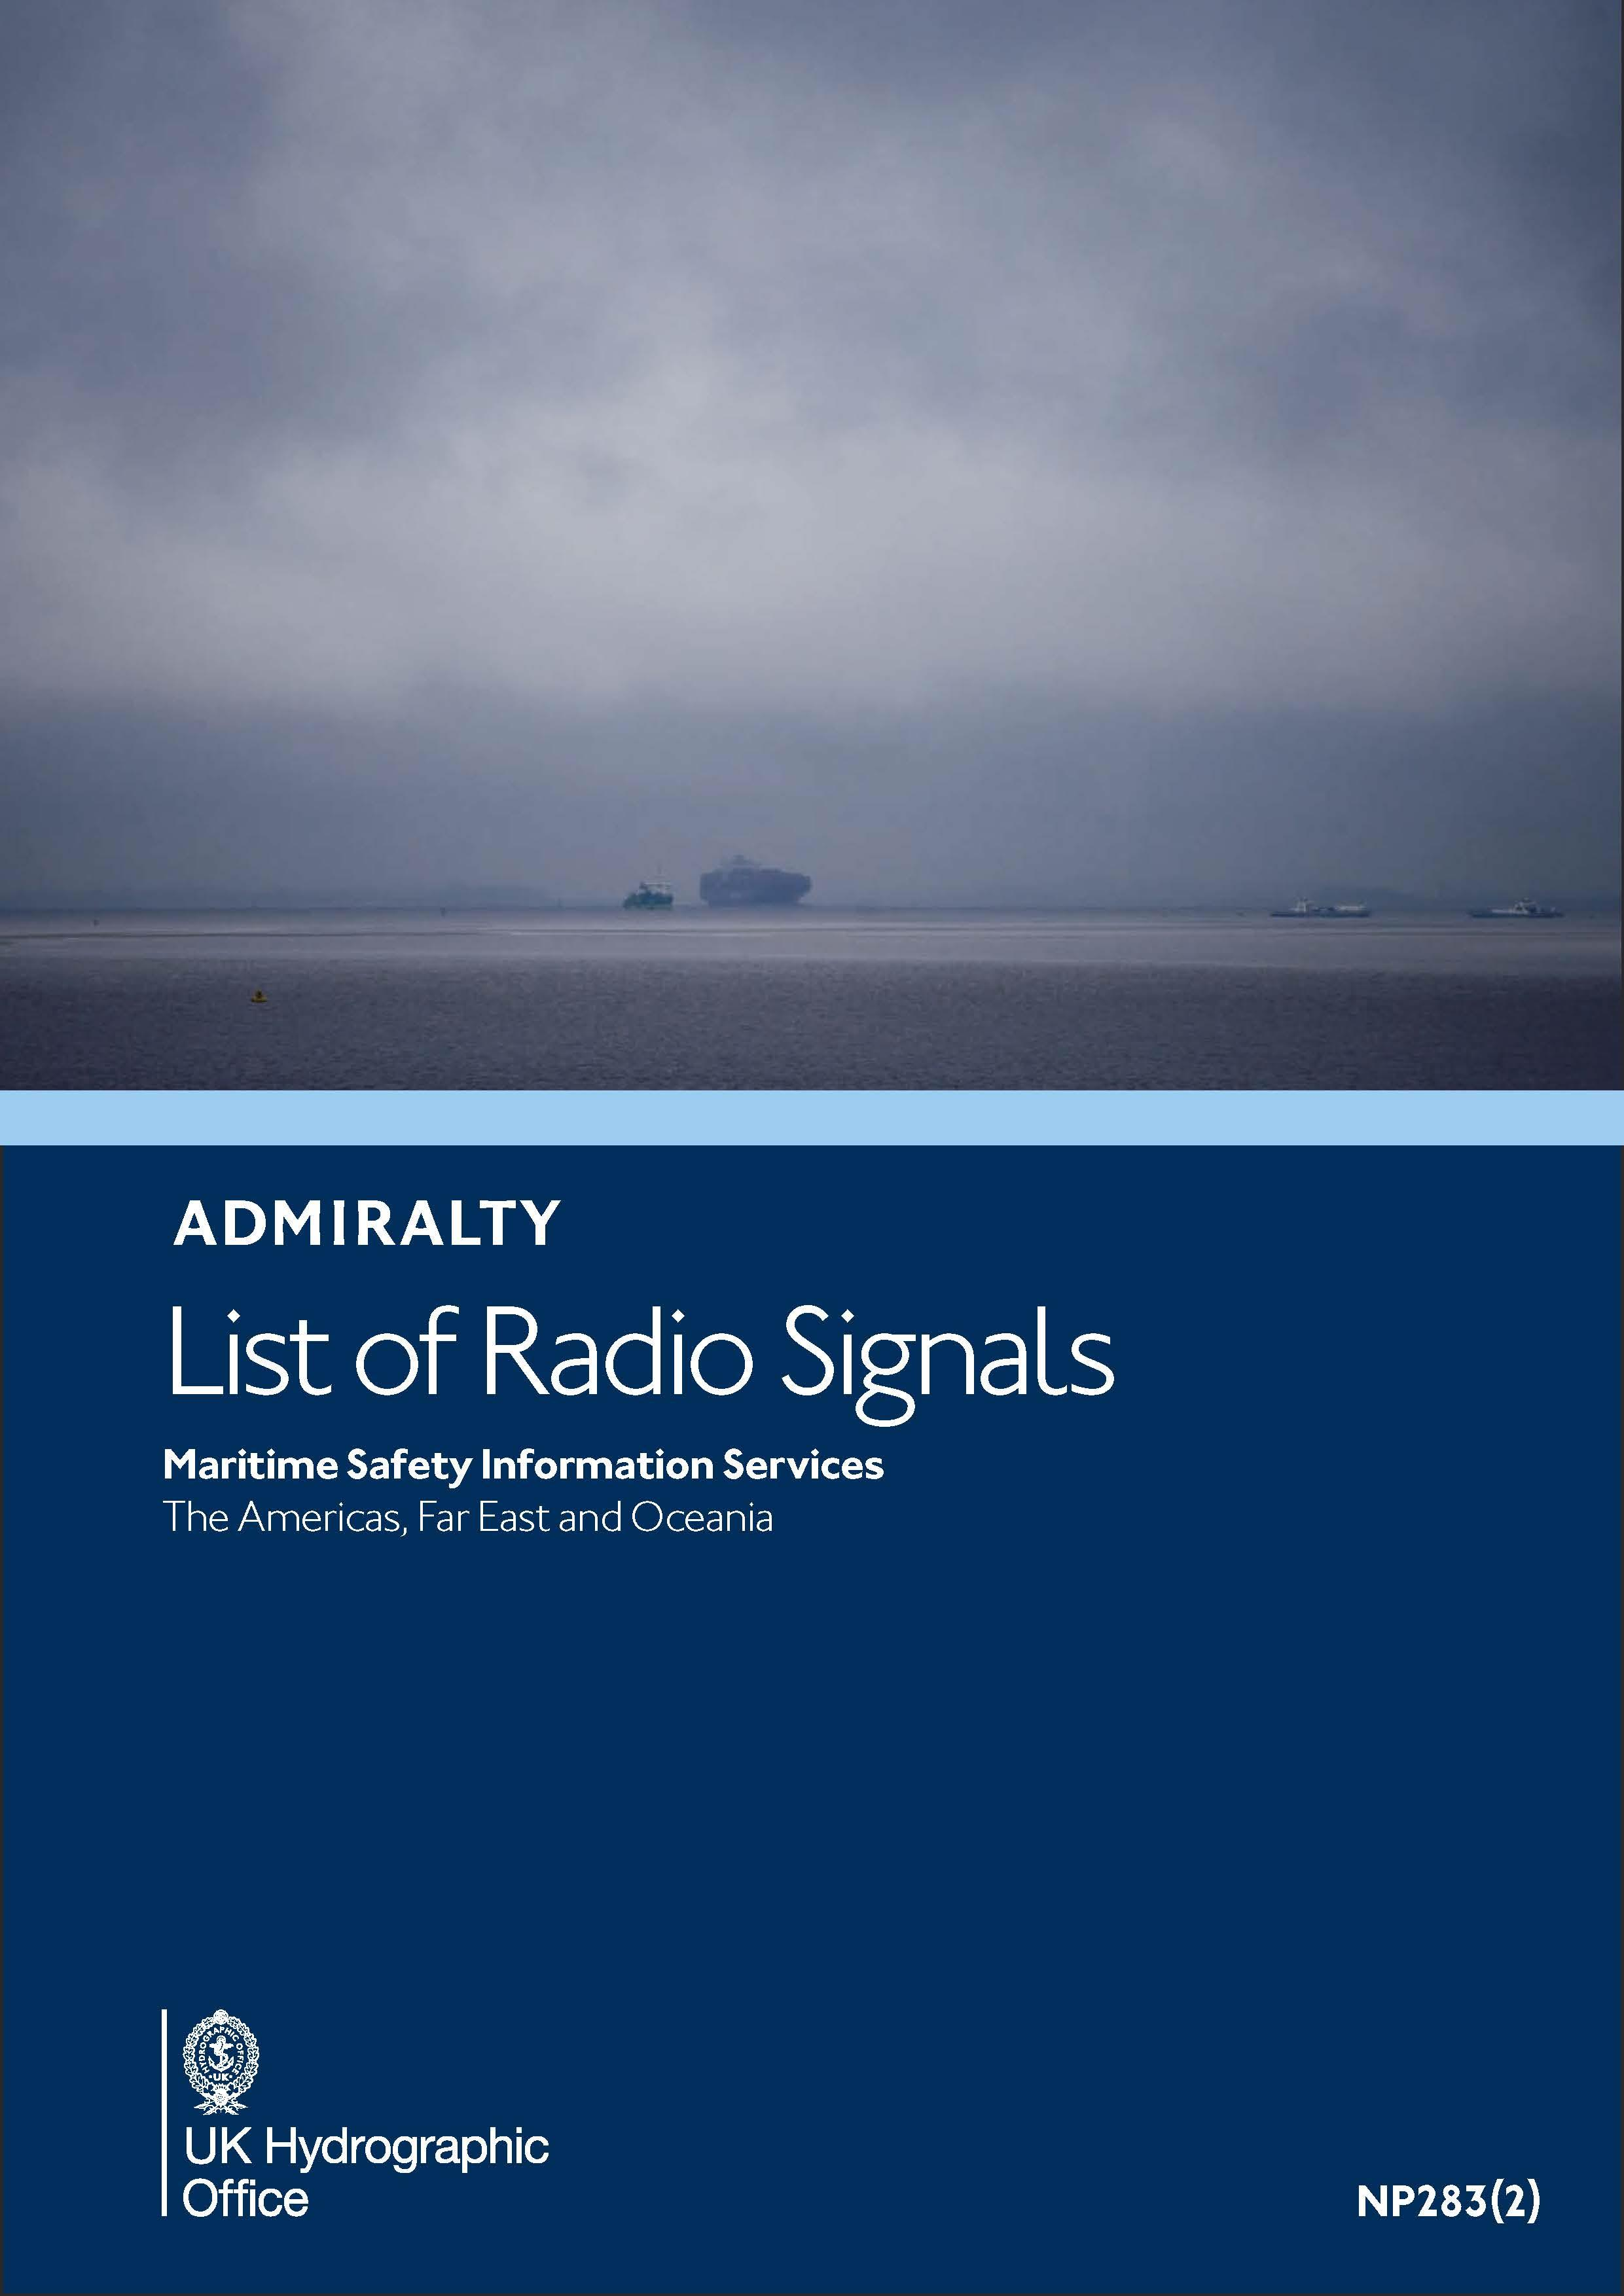 ADMIRALTY NP283(2) RadioSignals - Maritime Safety Information - APAC